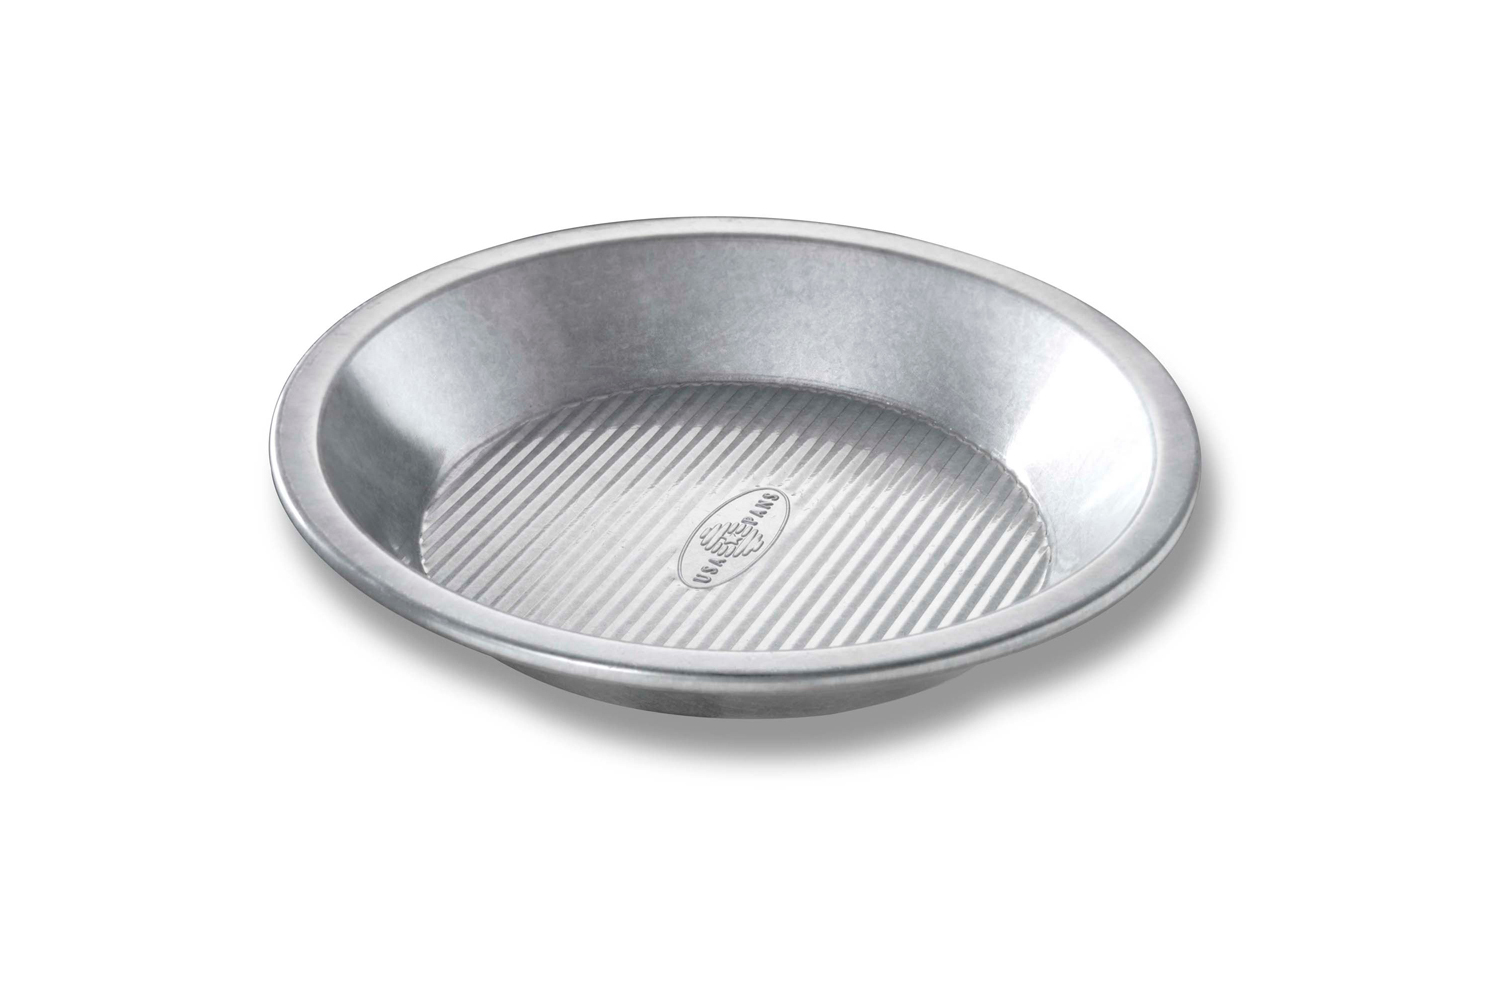 USA Pan Bakeware 9 x 1-1/2 inch Pie Pan